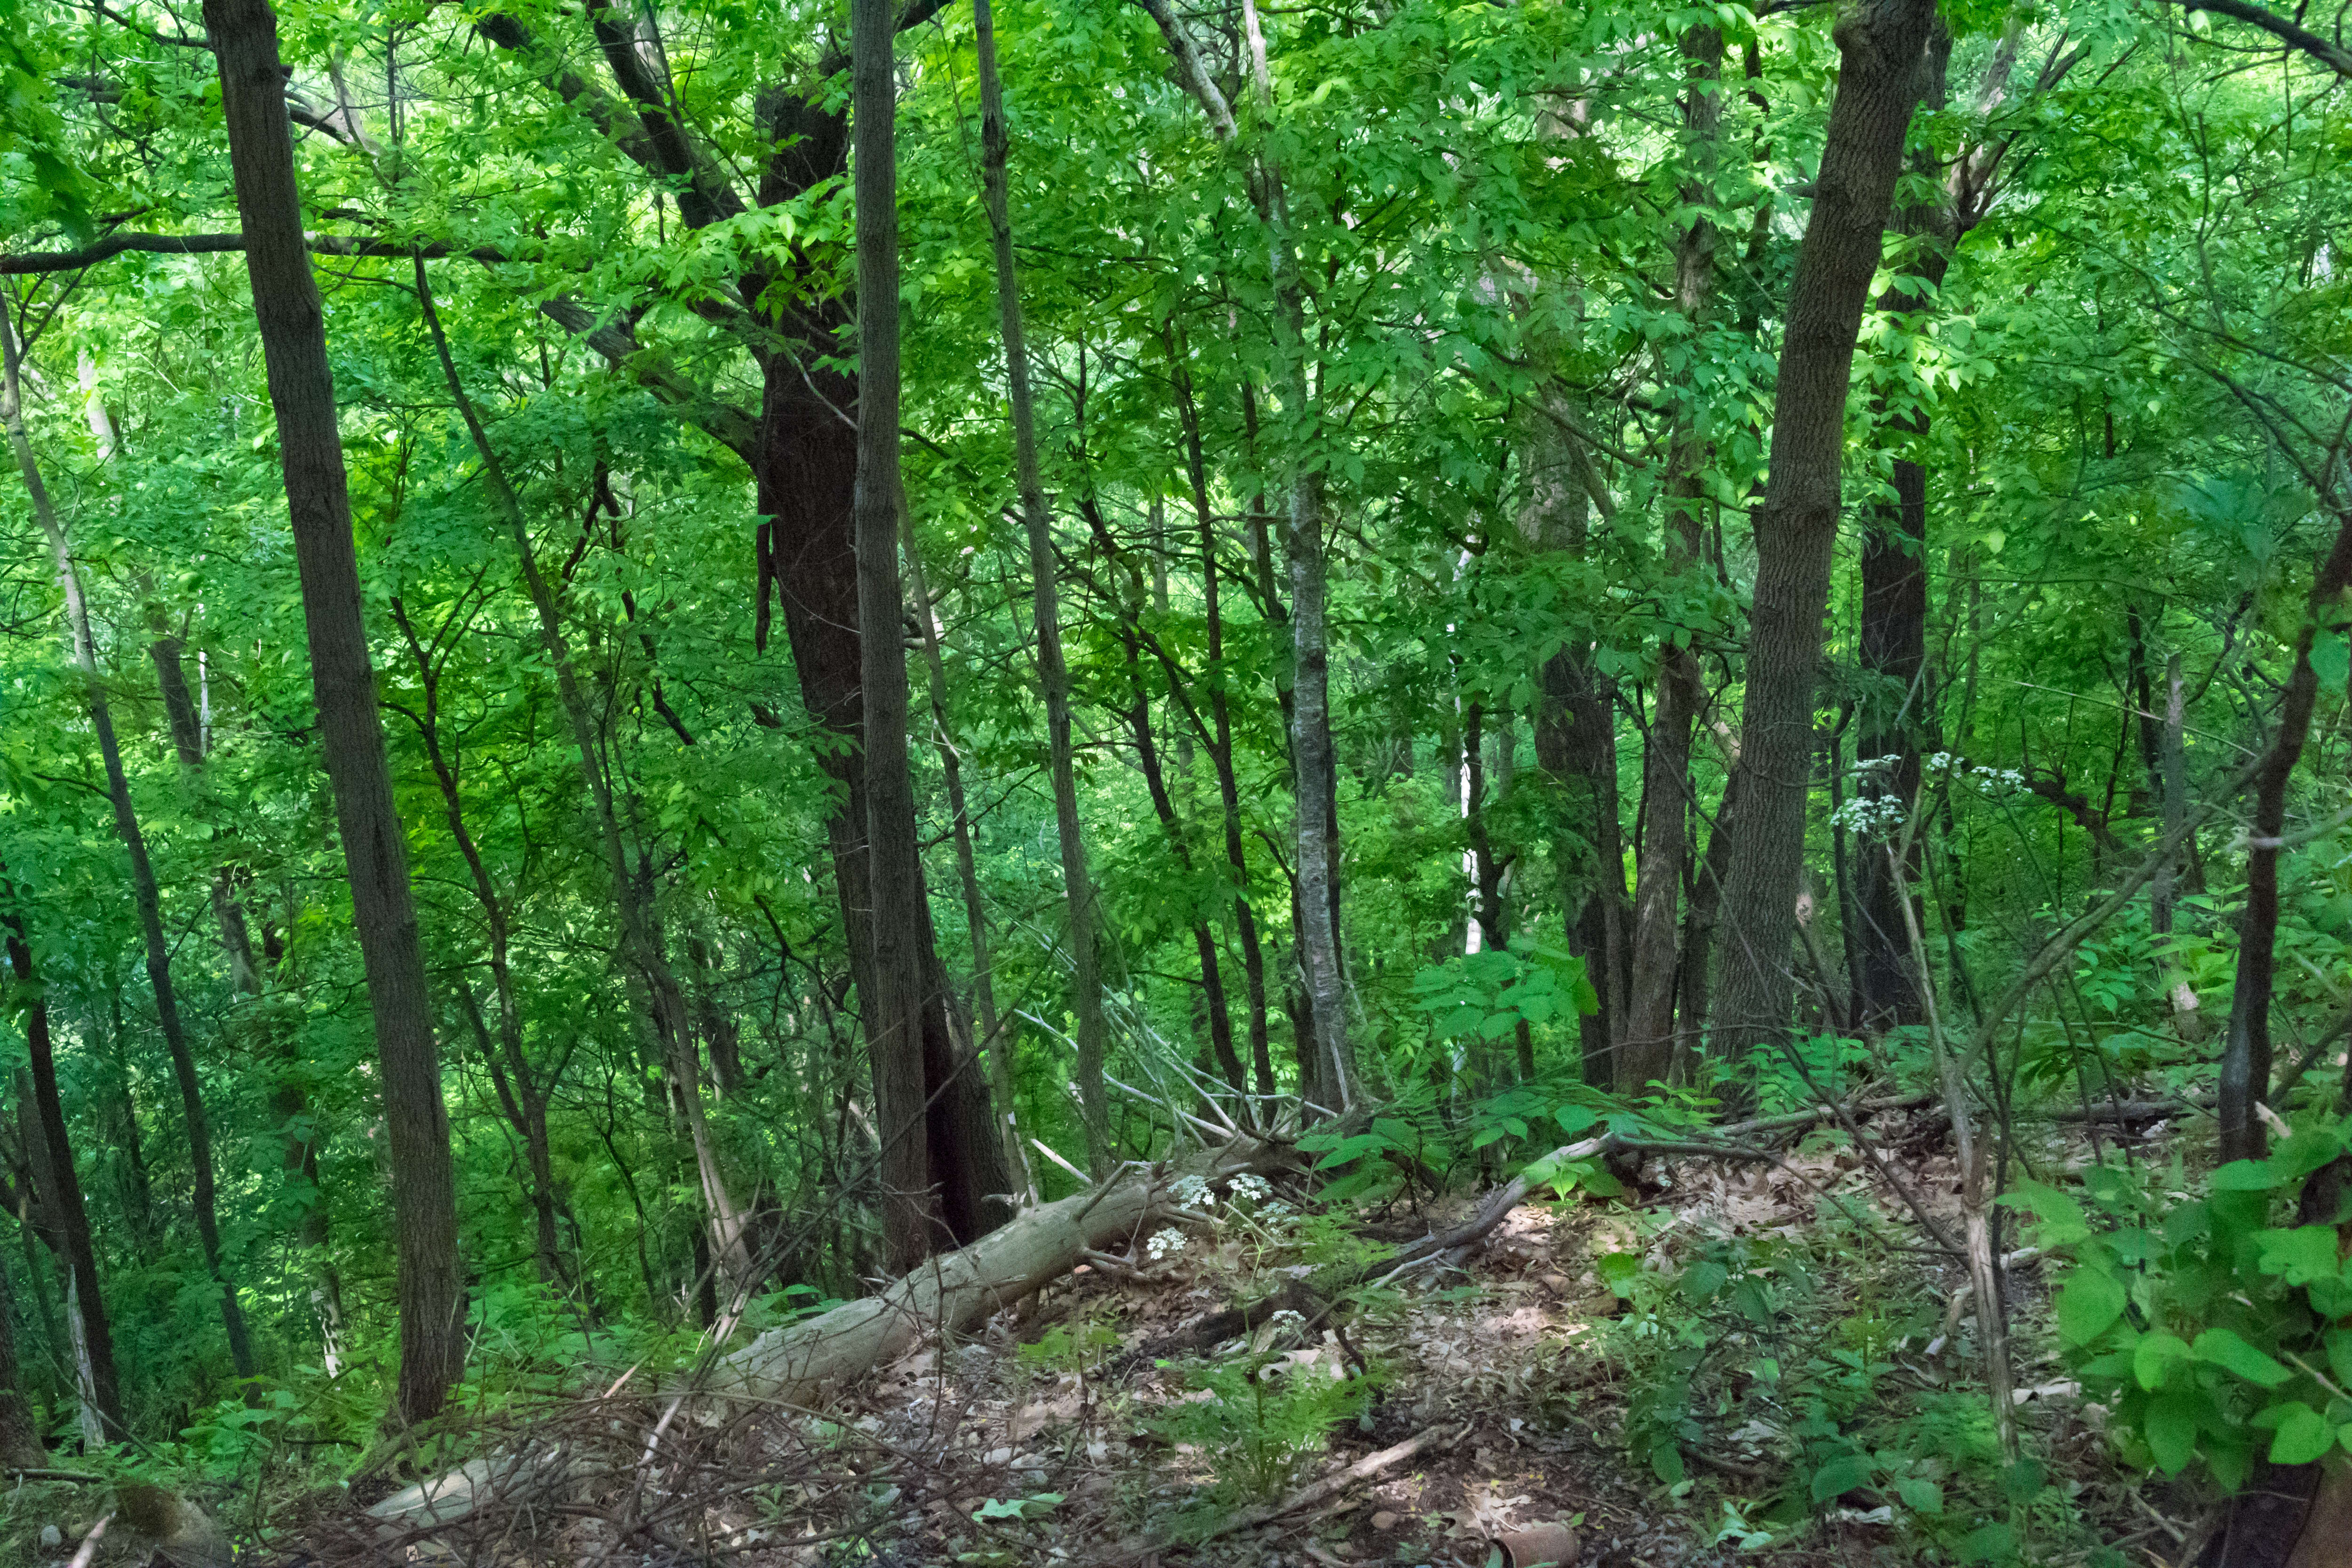 Waking in the woods of Mont Royal. The area by the look out of Belvédère Camillien-Houde offers a beautiful walk in the nature.